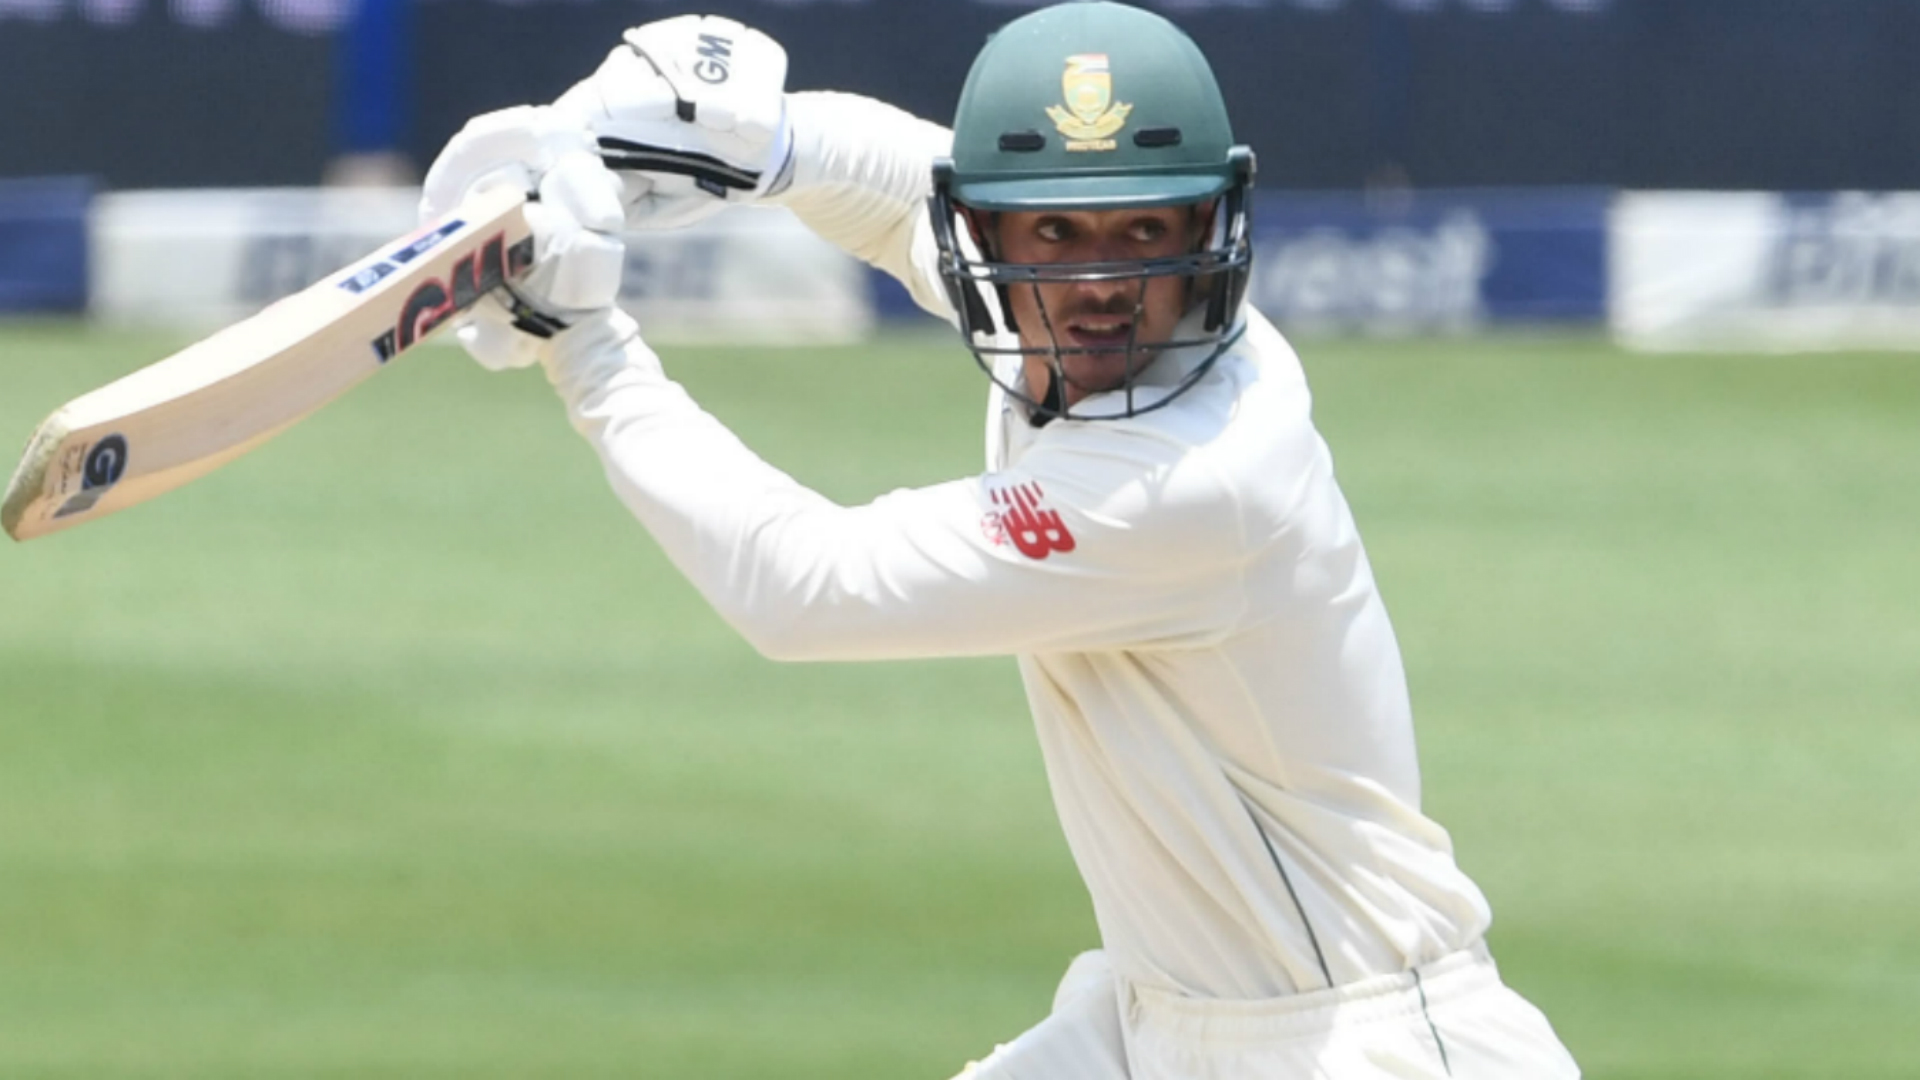 South Africa close in on series sweep after De Kock century